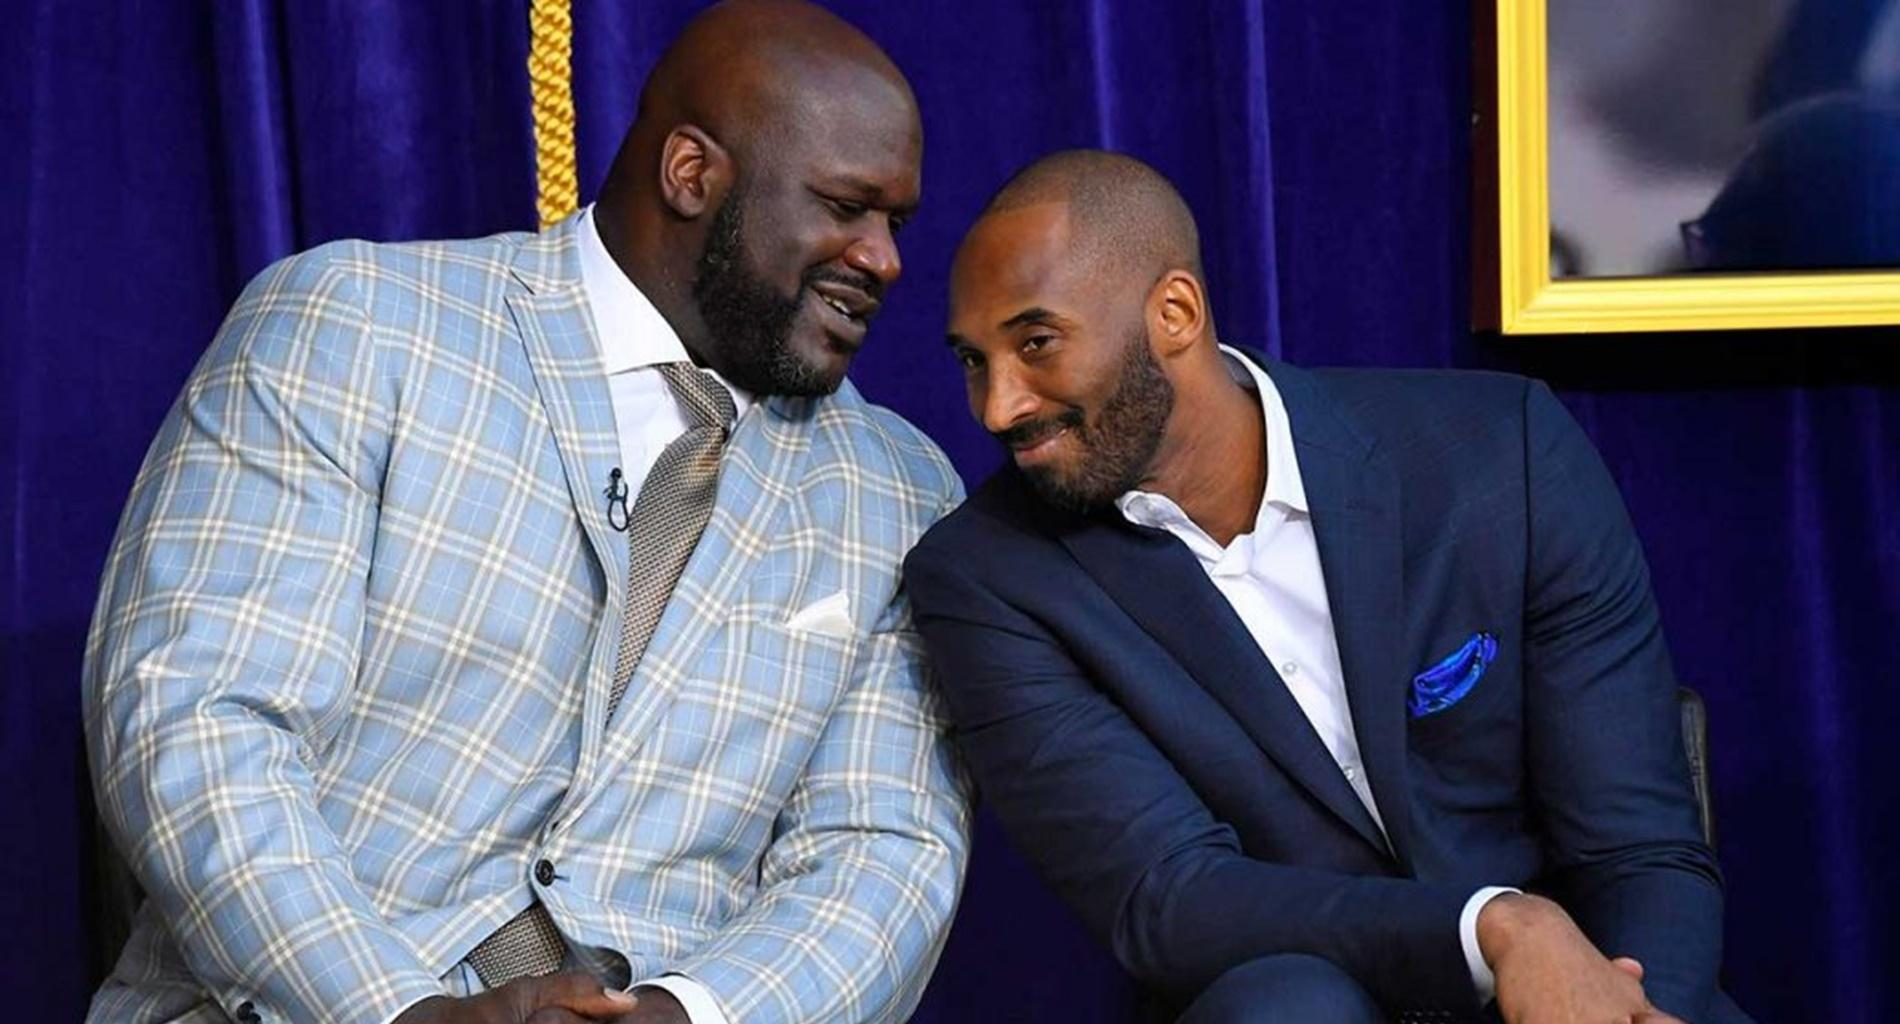 Shaquille O'Neal And Kobe Bryant's Daughters Celebrated Their 13th Birthdays On The Same Day -- See Their Beautiful Pictures And Find Out Why Fans Say They Are Future WNBA Stars